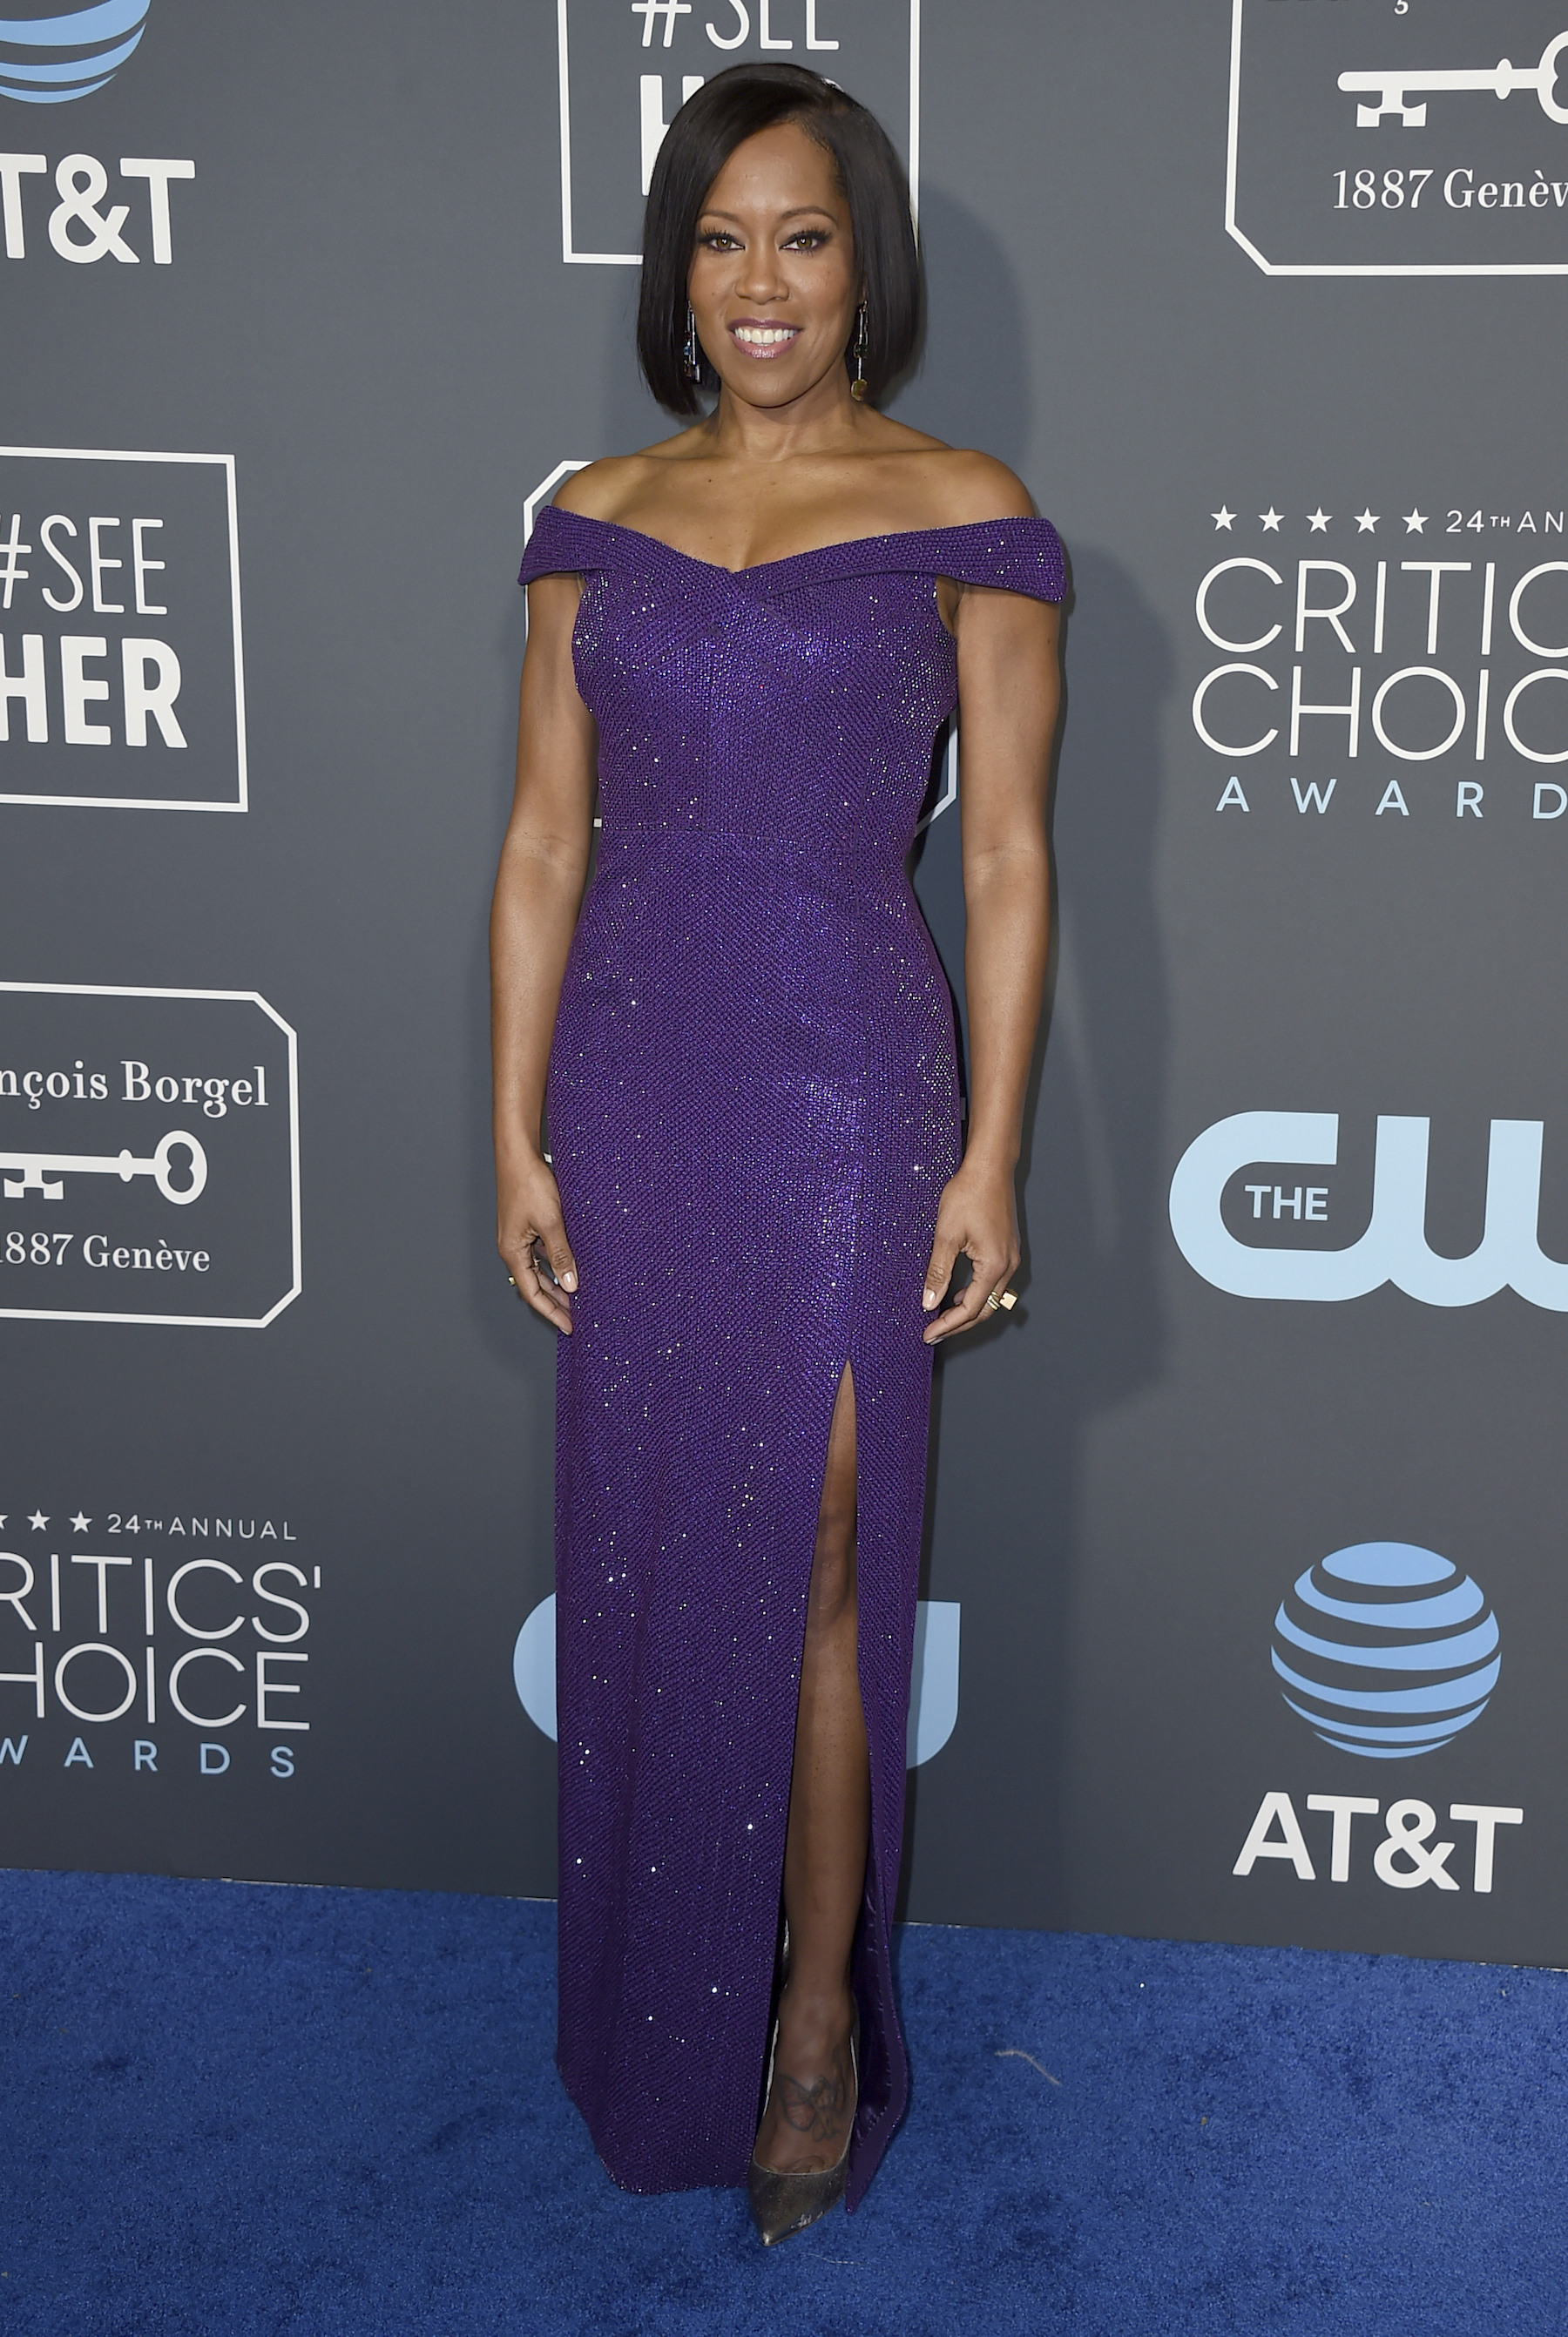 <div class='meta'><div class='origin-logo' data-origin='AP'></div><span class='caption-text' data-credit='Jordan Strauss/Invision/AP'>Regina King arrives at the 24th annual Critics' Choice Awards on Sunday, Jan. 13, 2019, at the Barker Hangar in Santa Monica, Calif.</span></div>